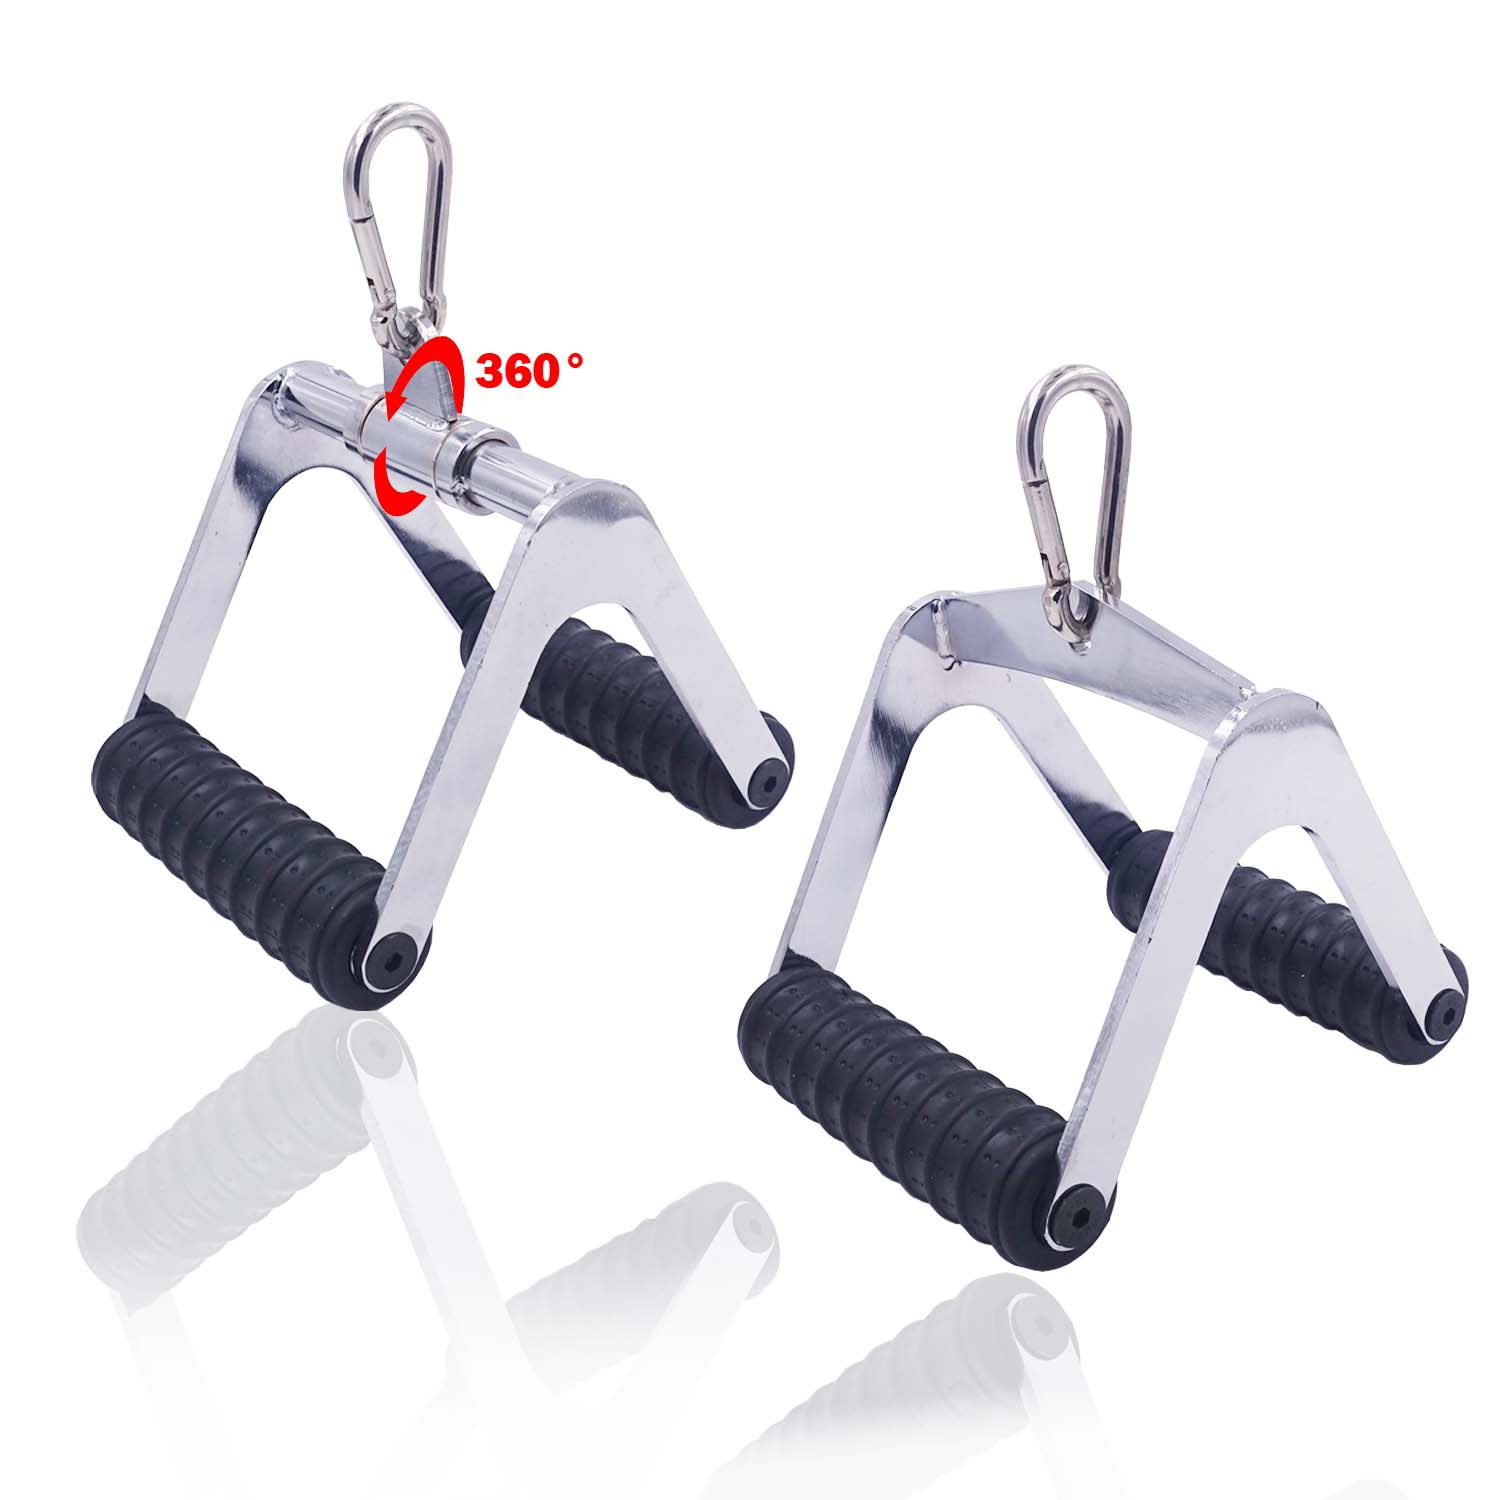 Fitness Heavy Duty Rowing Handles Gym Workout T-Bar Double D-Handle Cable Machine Accessories Triceps Pull Down V Shaped Bar